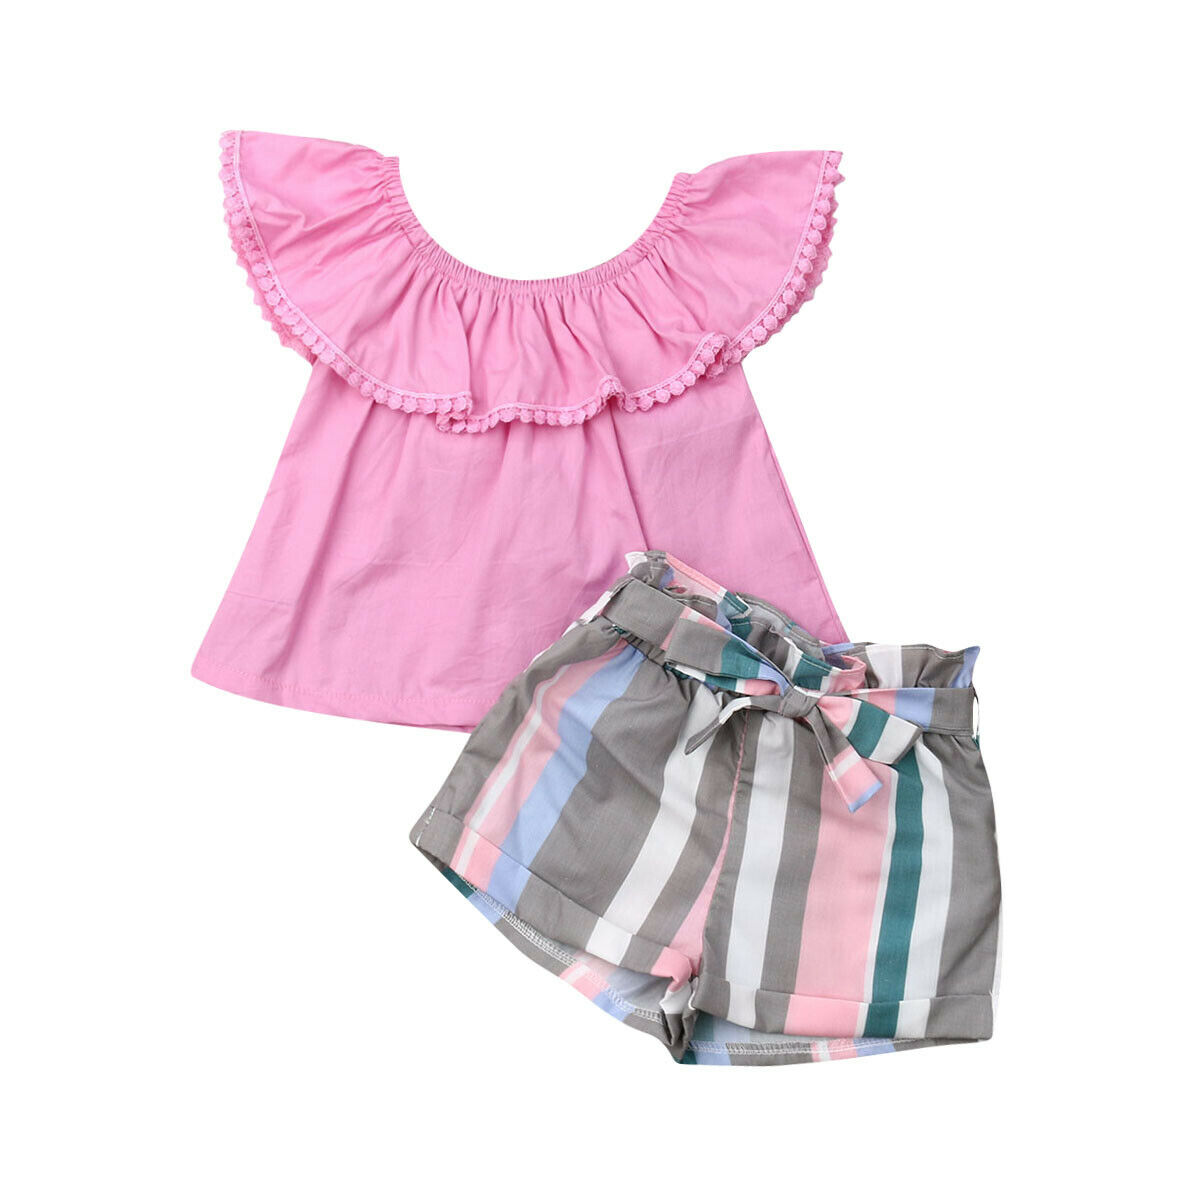 cb280ad8ce98 Fashion Toddler Baby Girl Kid 1-6Y Clothes Sets Off Shoulder Tops Striped  Pants Summer Clothes Outfits Set ~ Super Deal June 2019